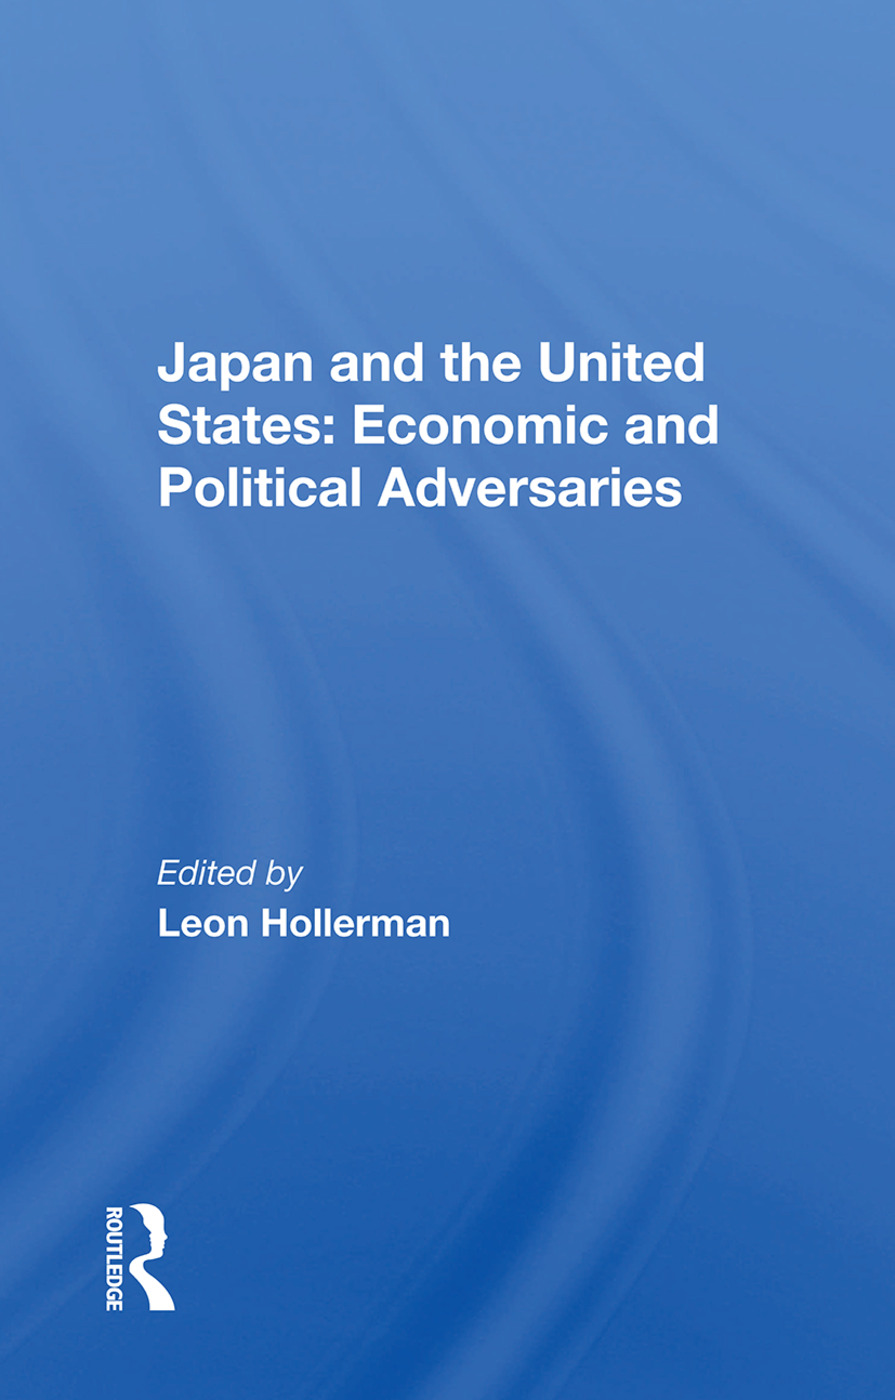 Japan and the United States: Economic and Political Adversaries book cover